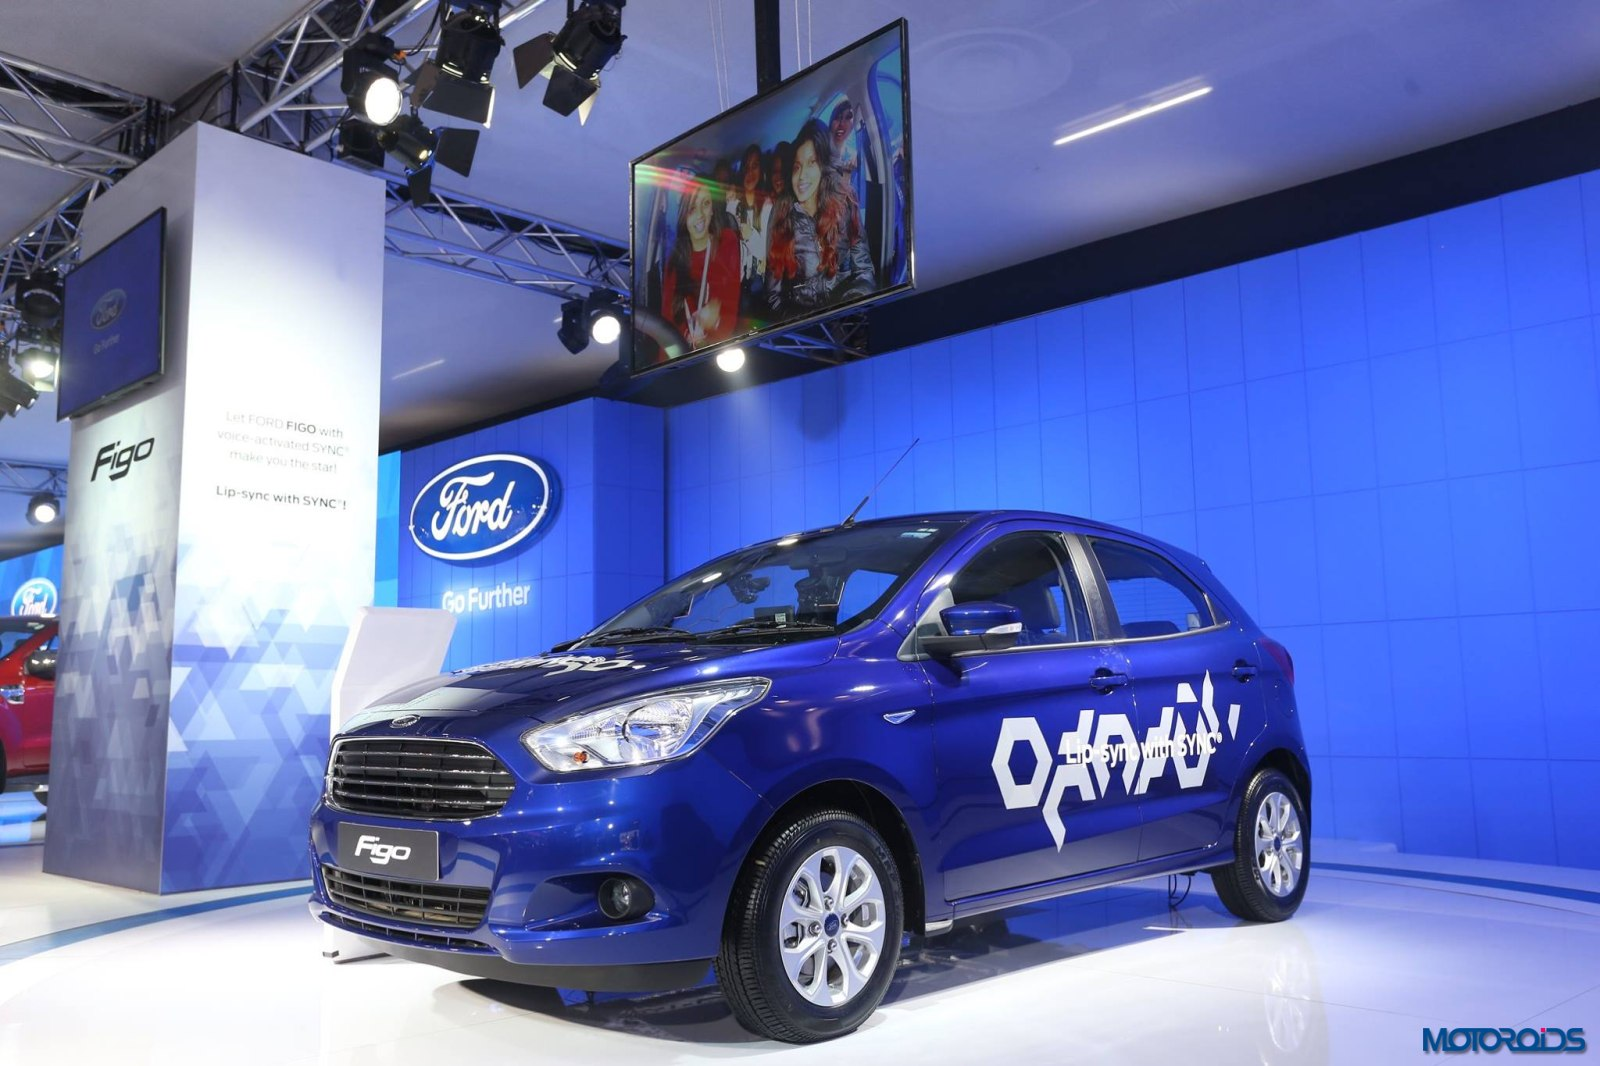 Ford Lip Sync with Sync Auto Expo 2016